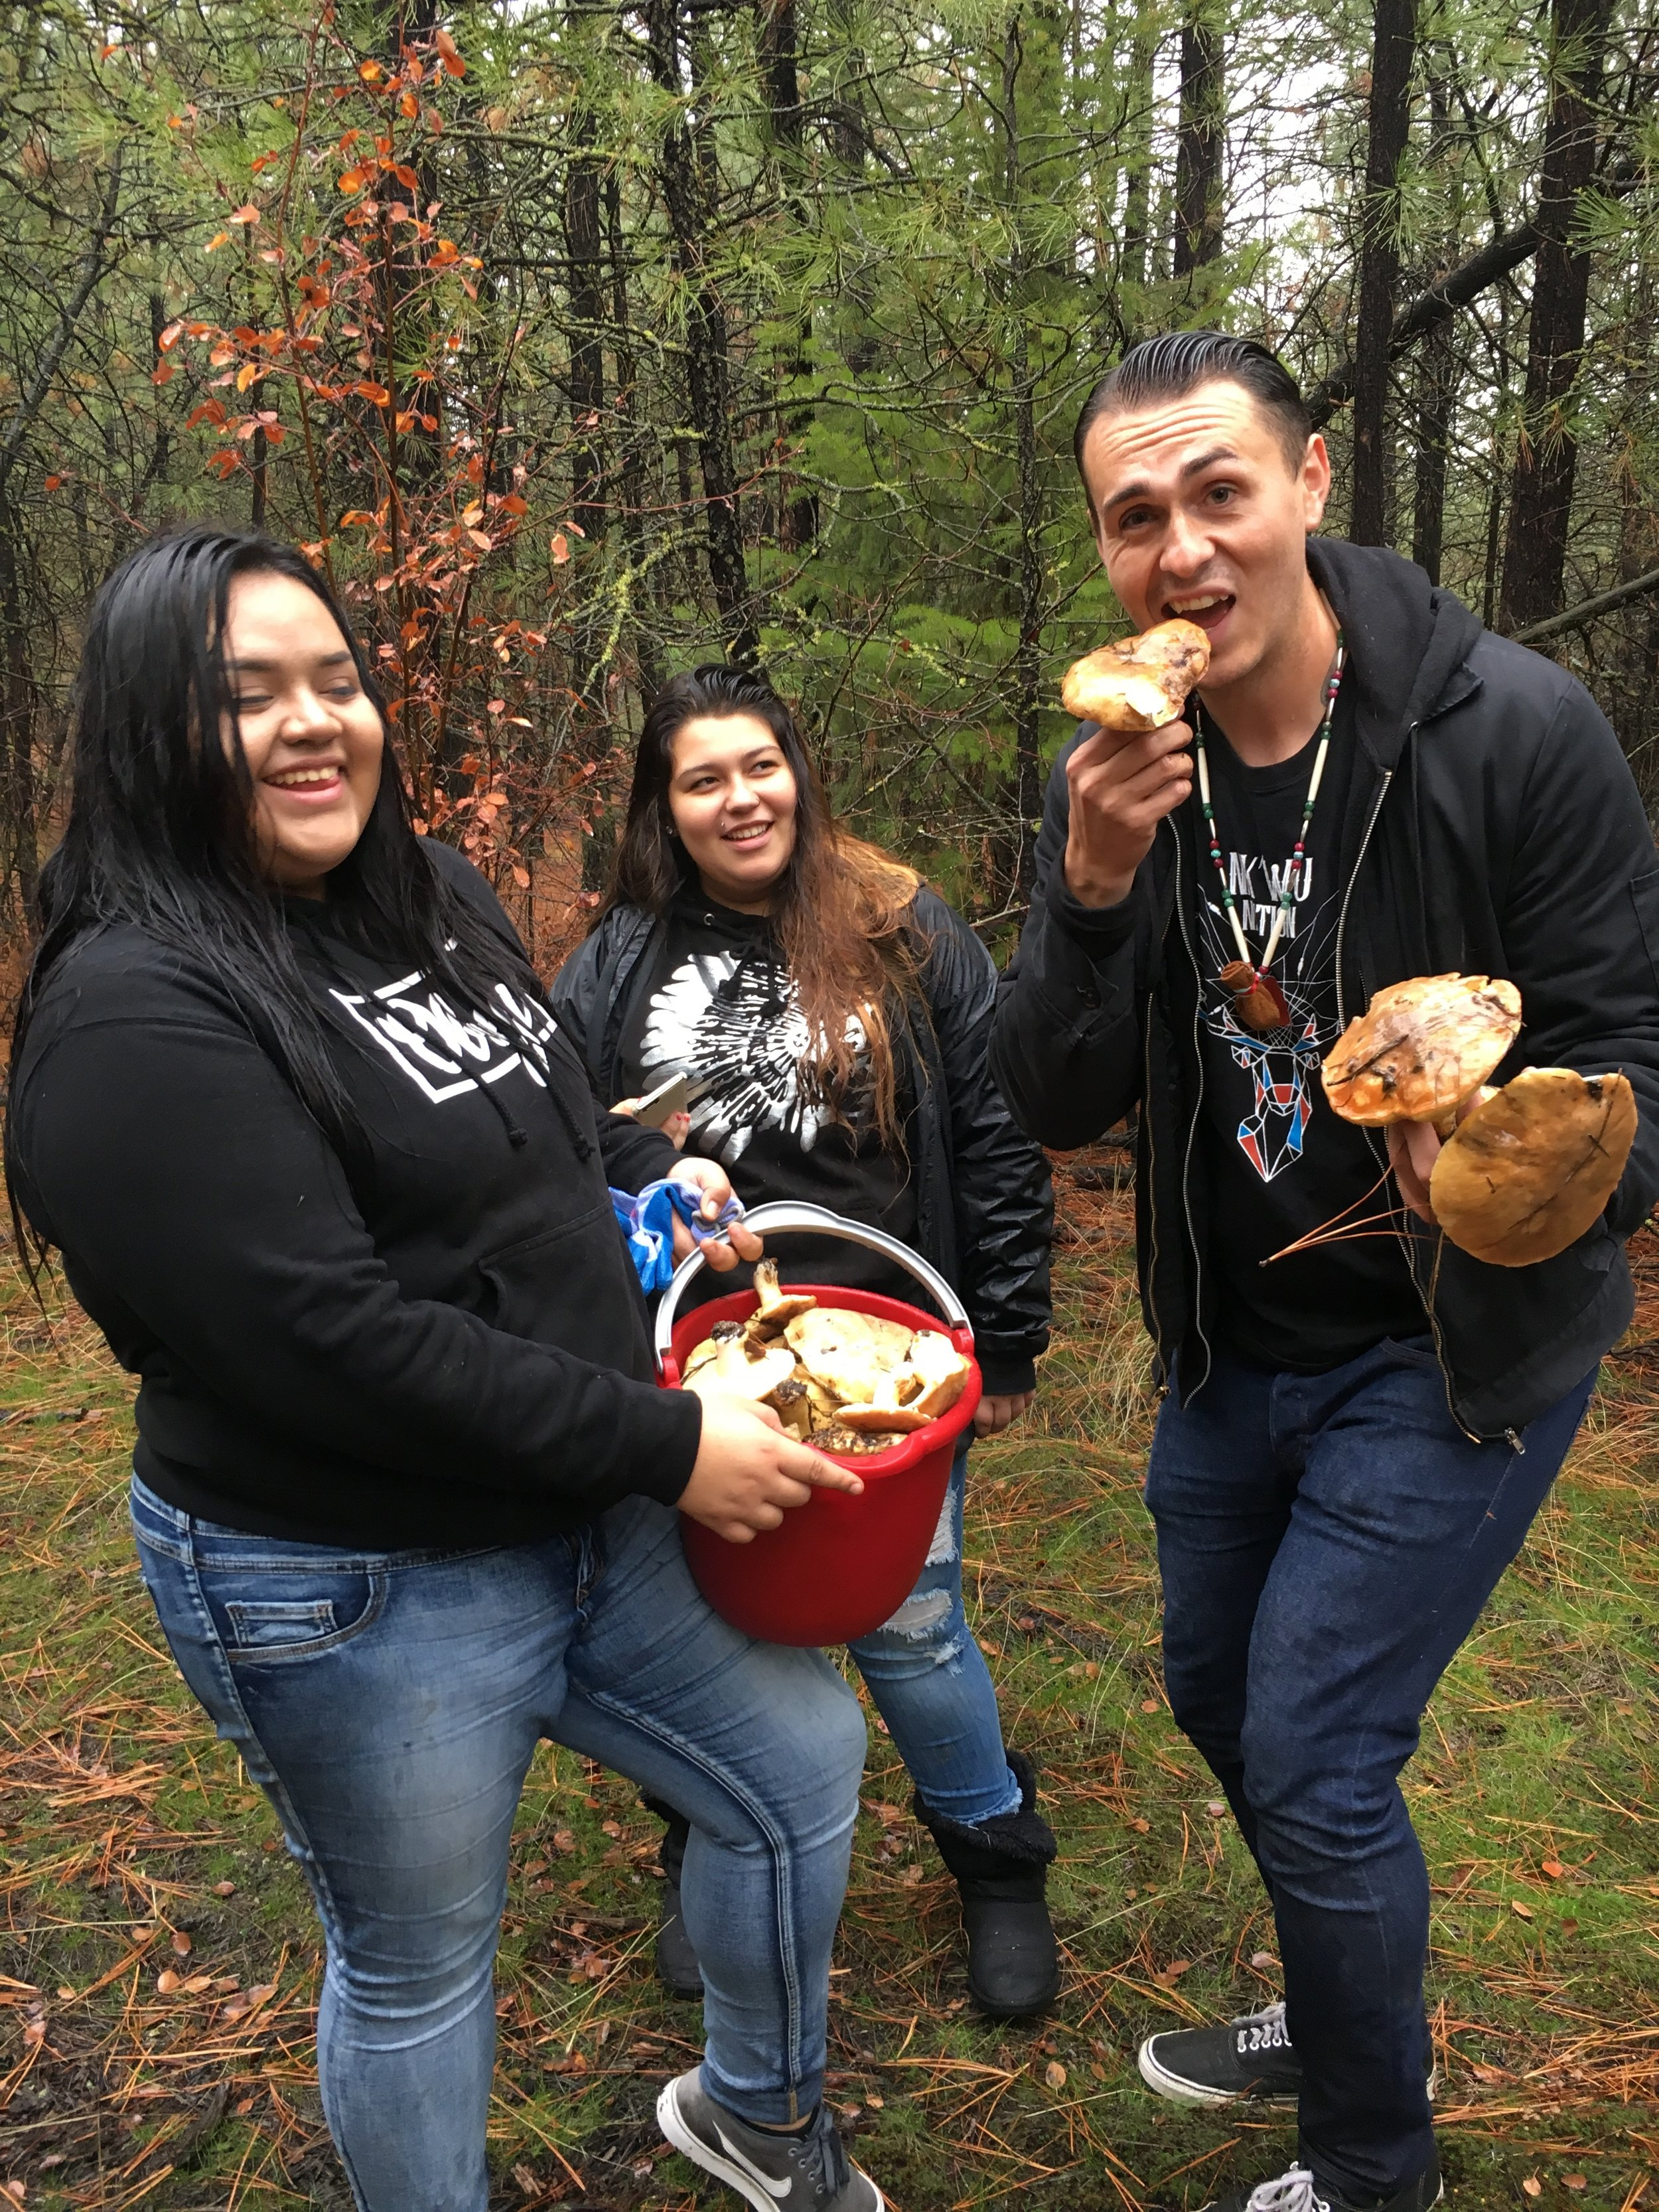 Youth had a lot of fun, came home with lots of king boletes mushrooms